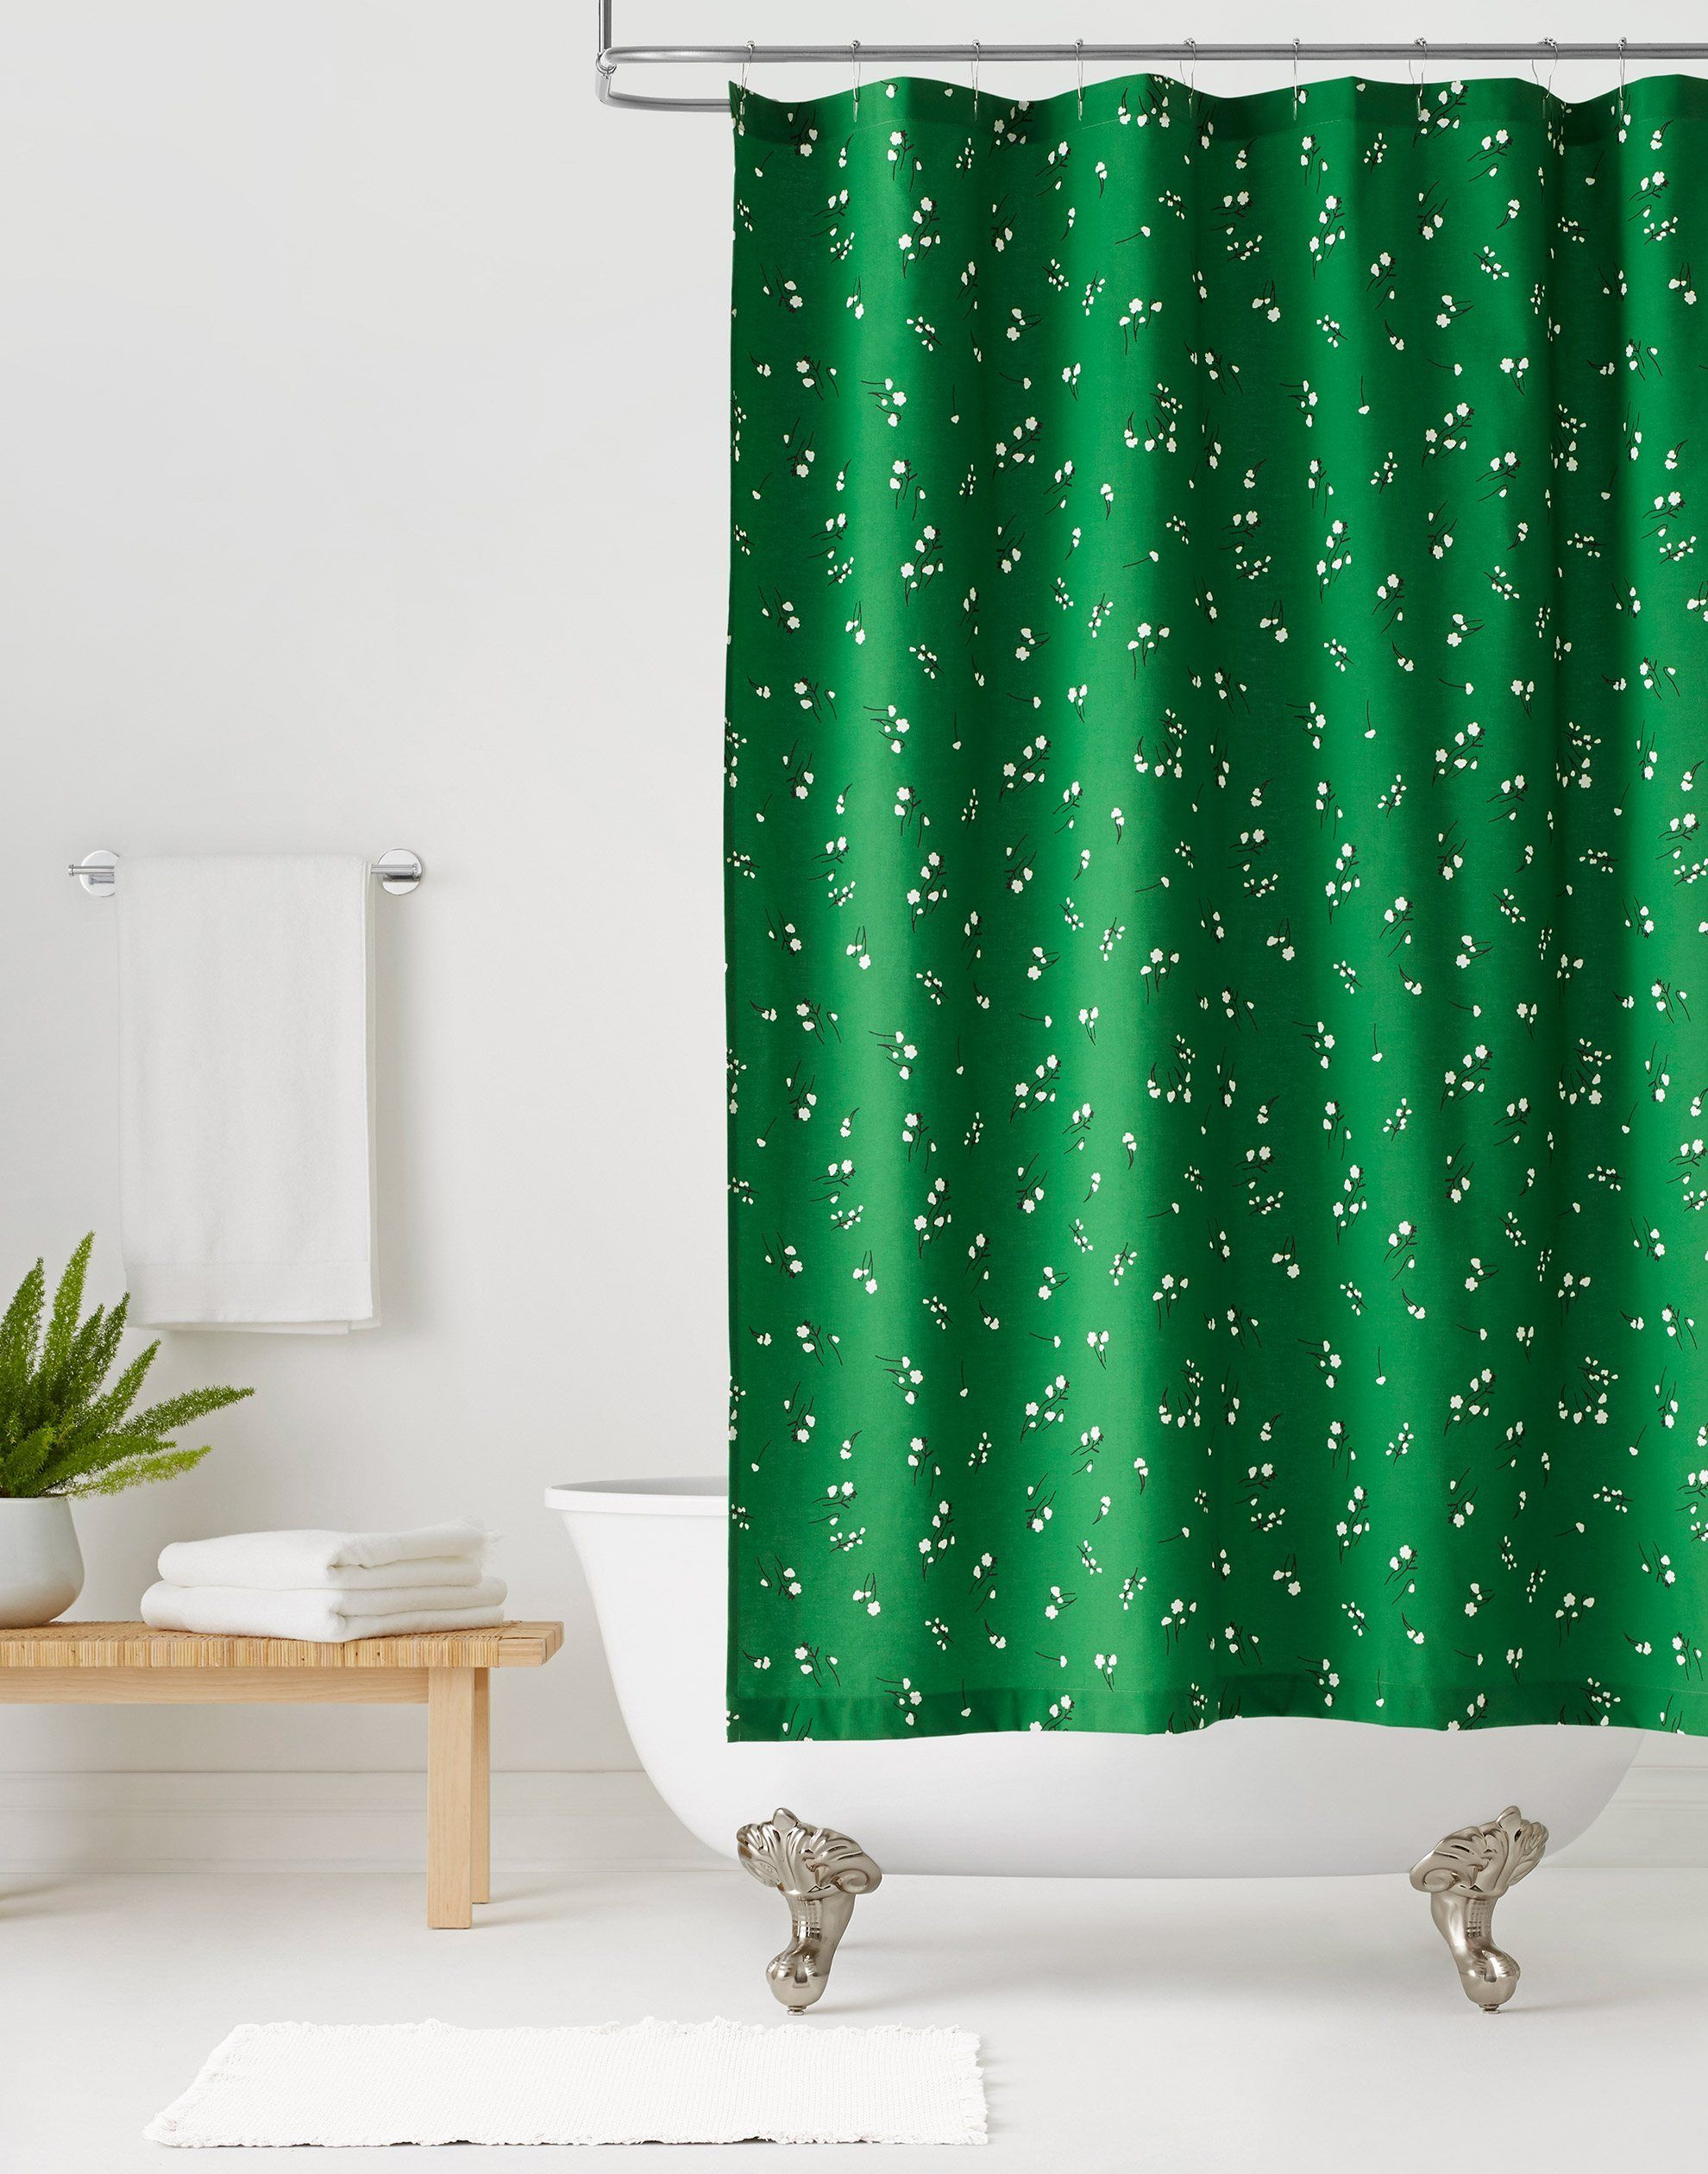 Wildflower Emerald Shower Curtain Default Title Green Shower Curtains Colorful Curtains Curtains